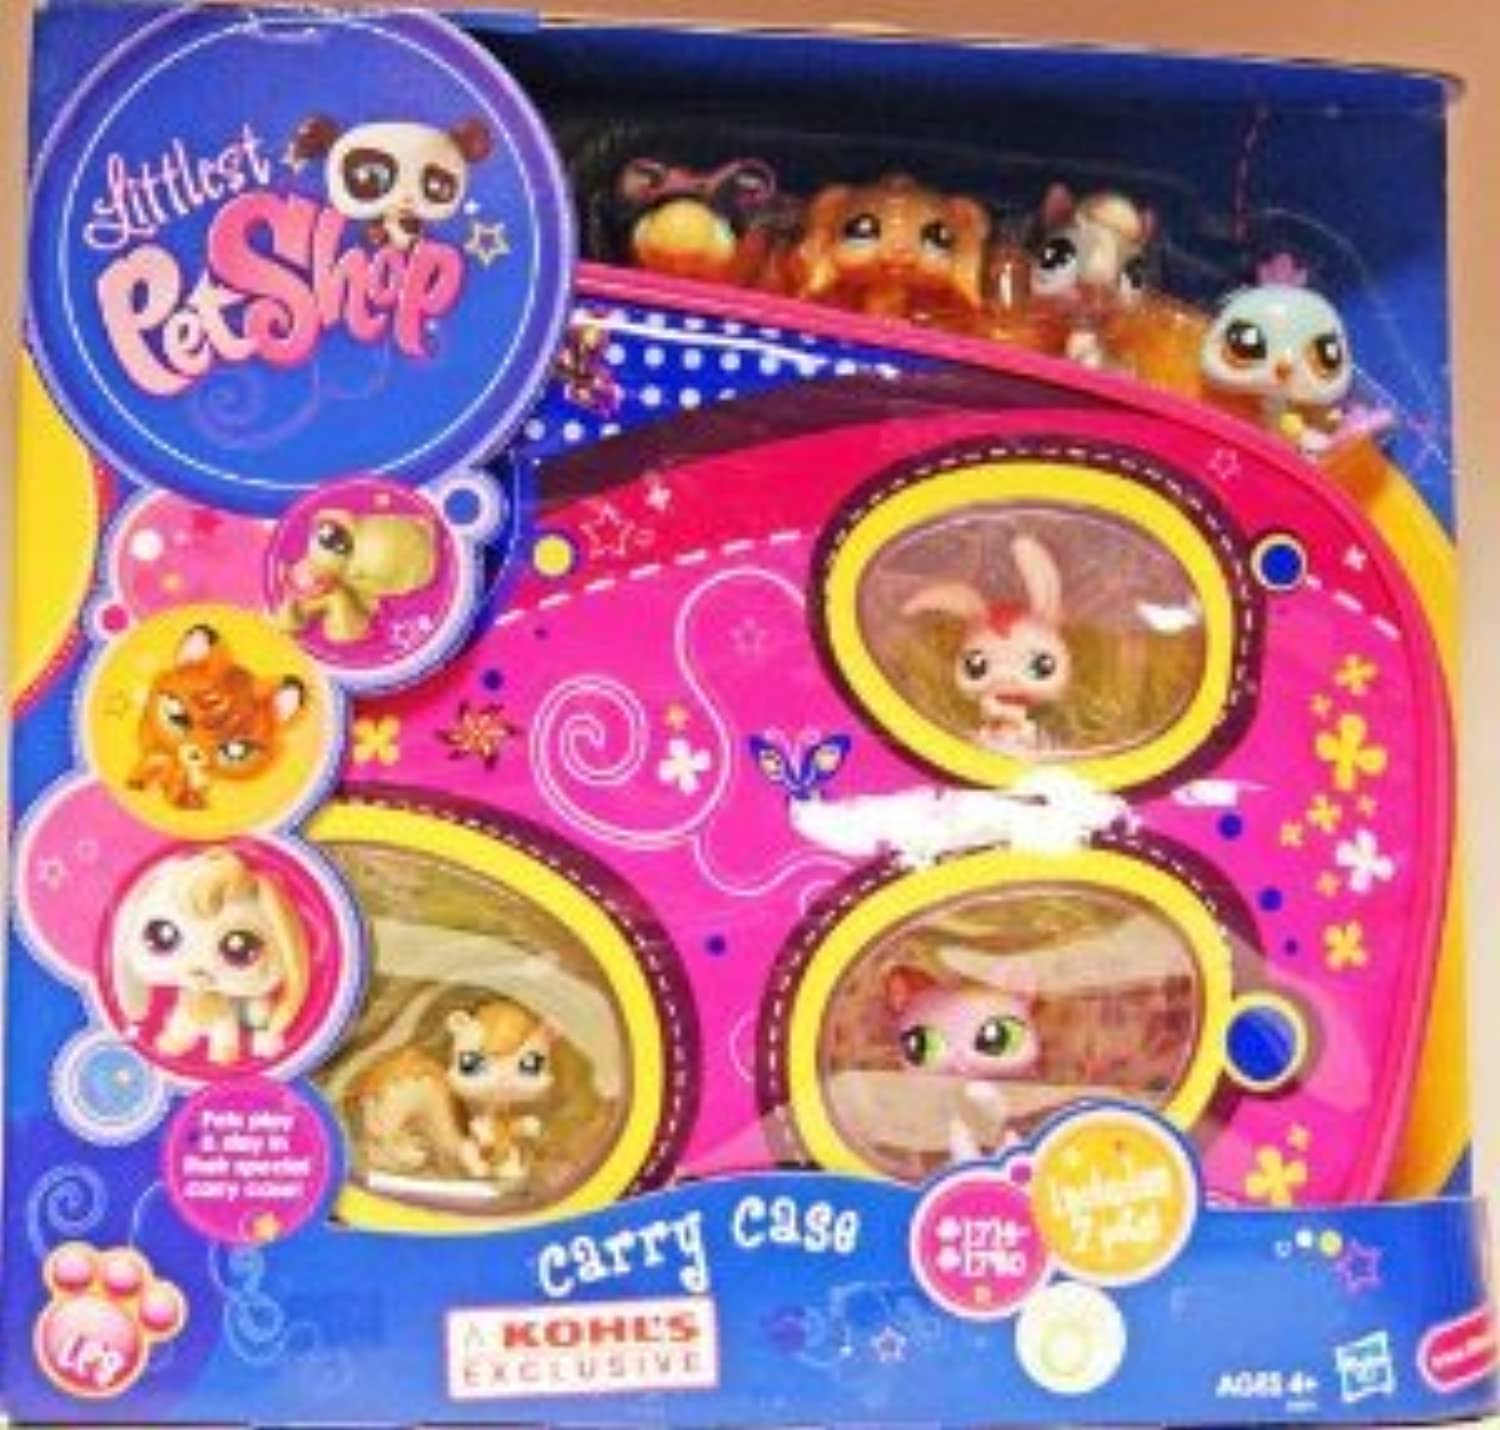 Kohl's Exclusive Littlest Pet Shop (リトルペットショップ) Pink Carry Case with Seven Pets(並行輸入)